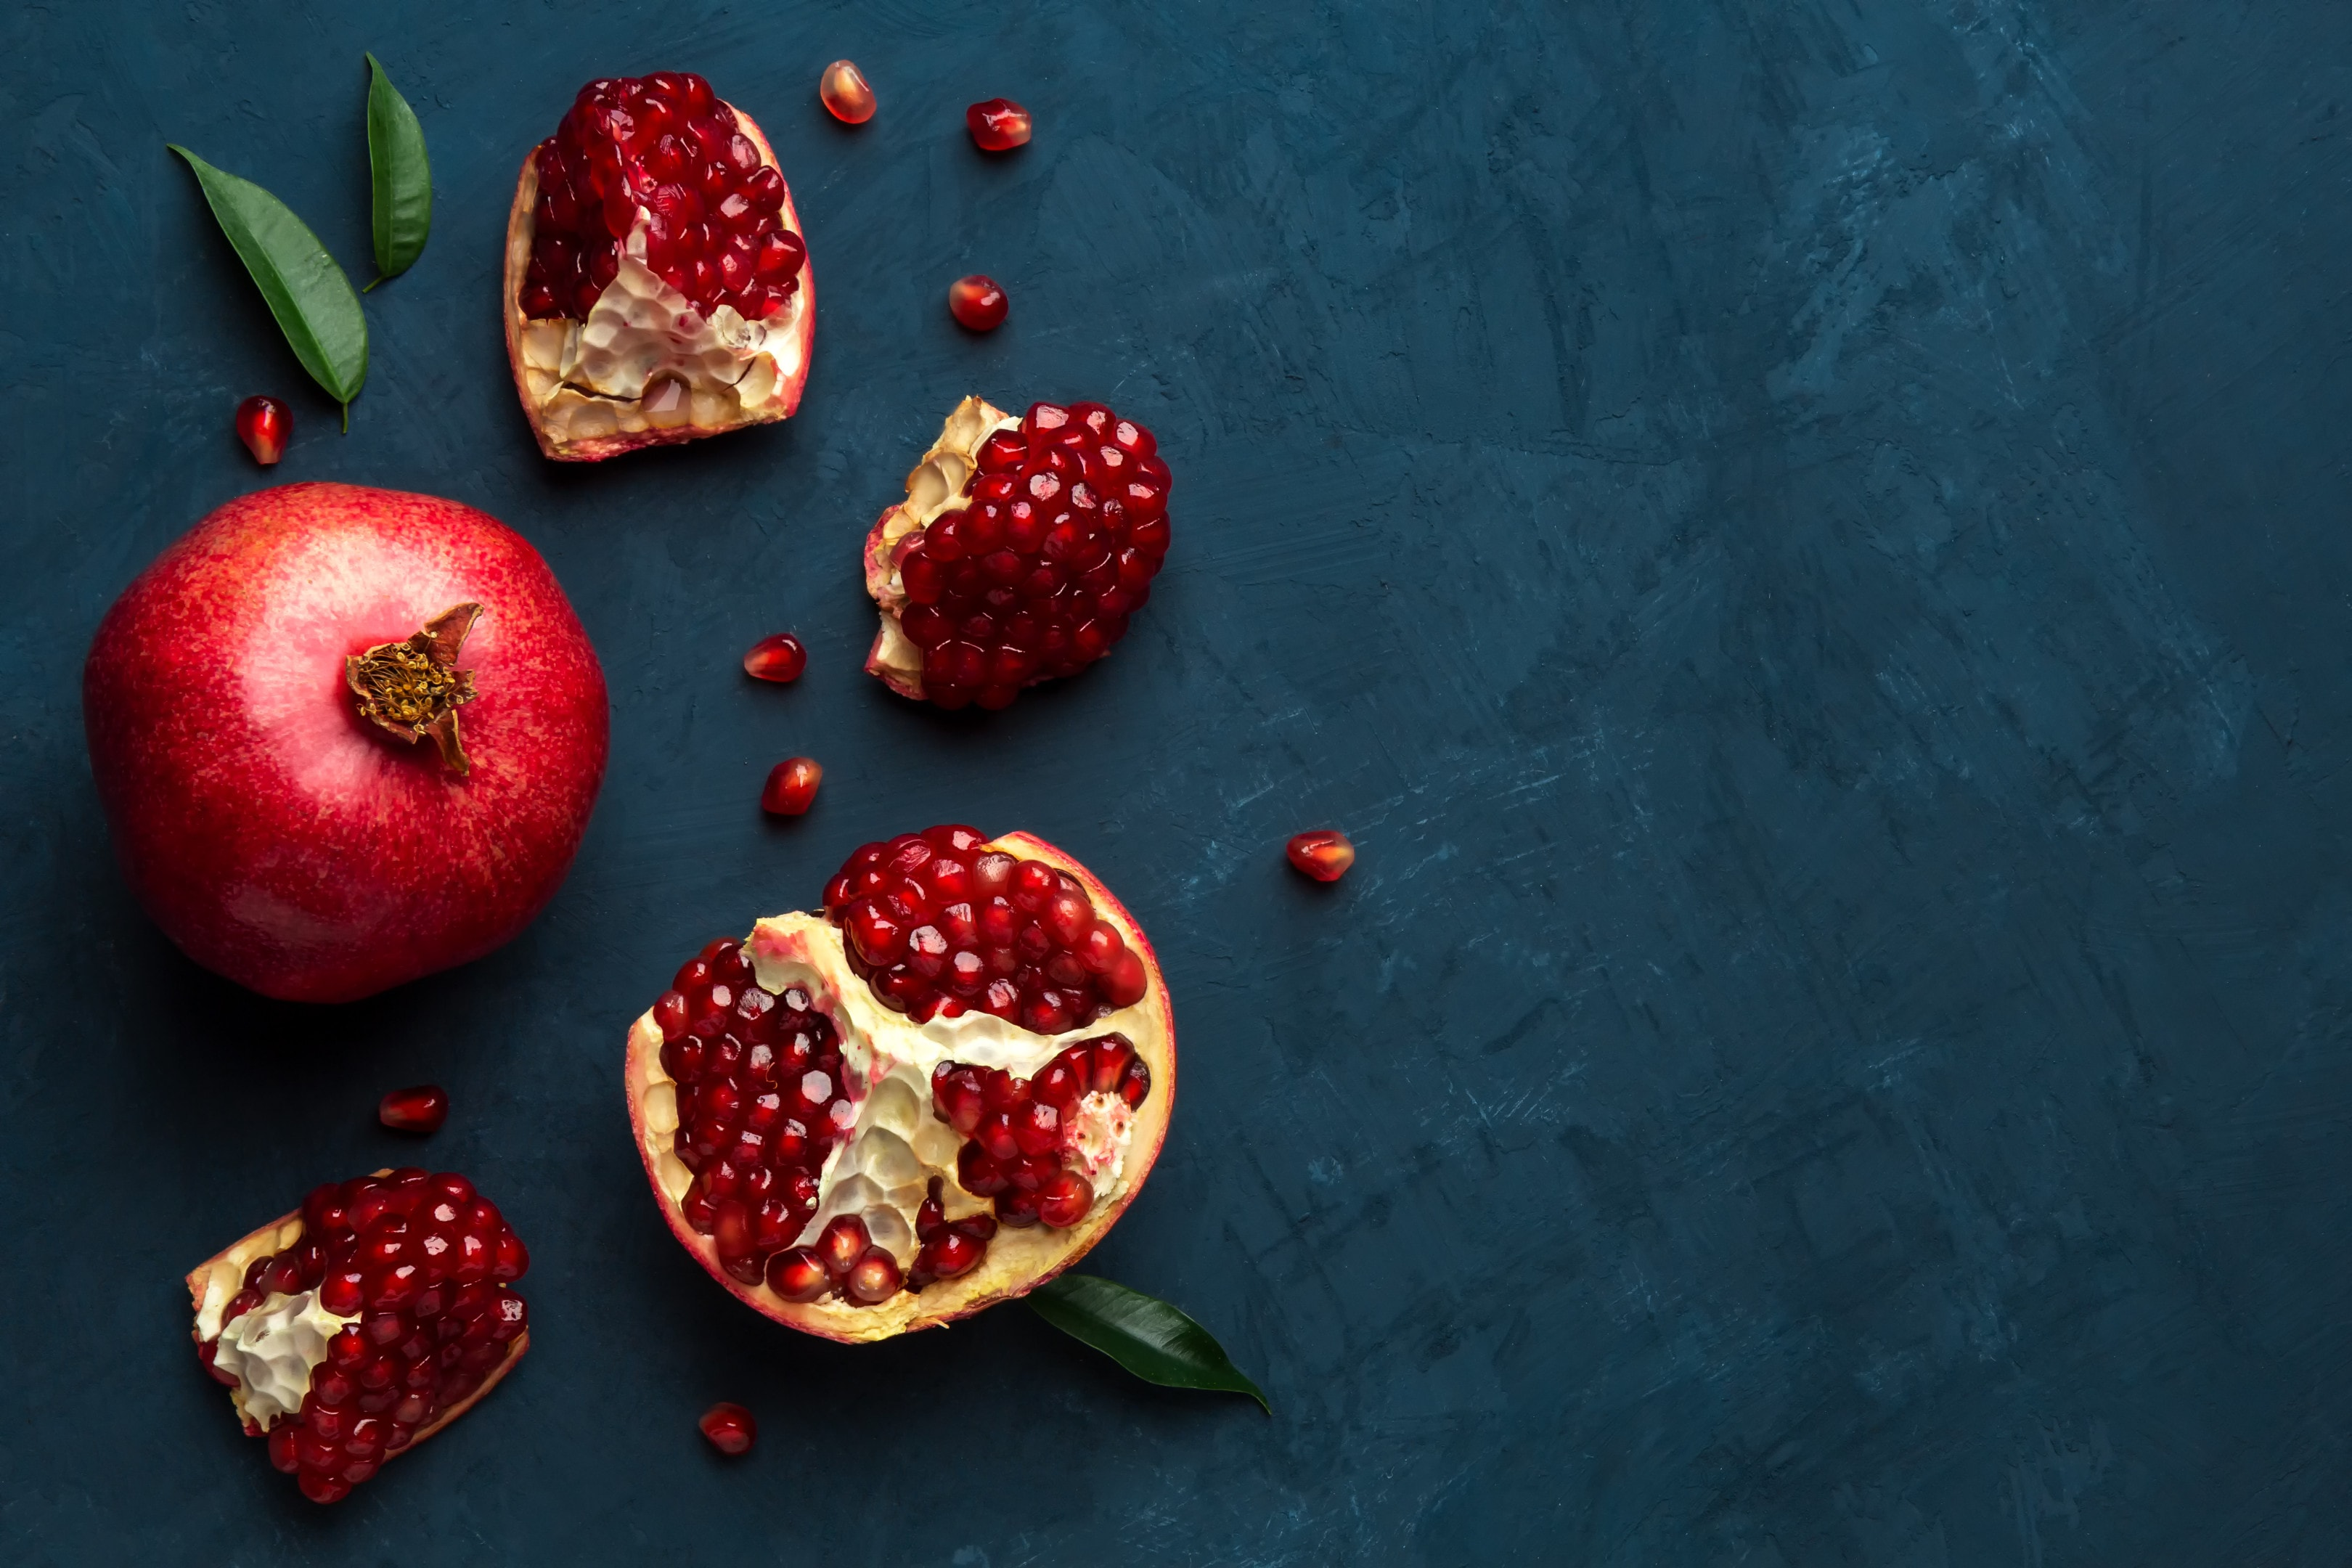 Juicy fresh pomegranate on blue wooden table